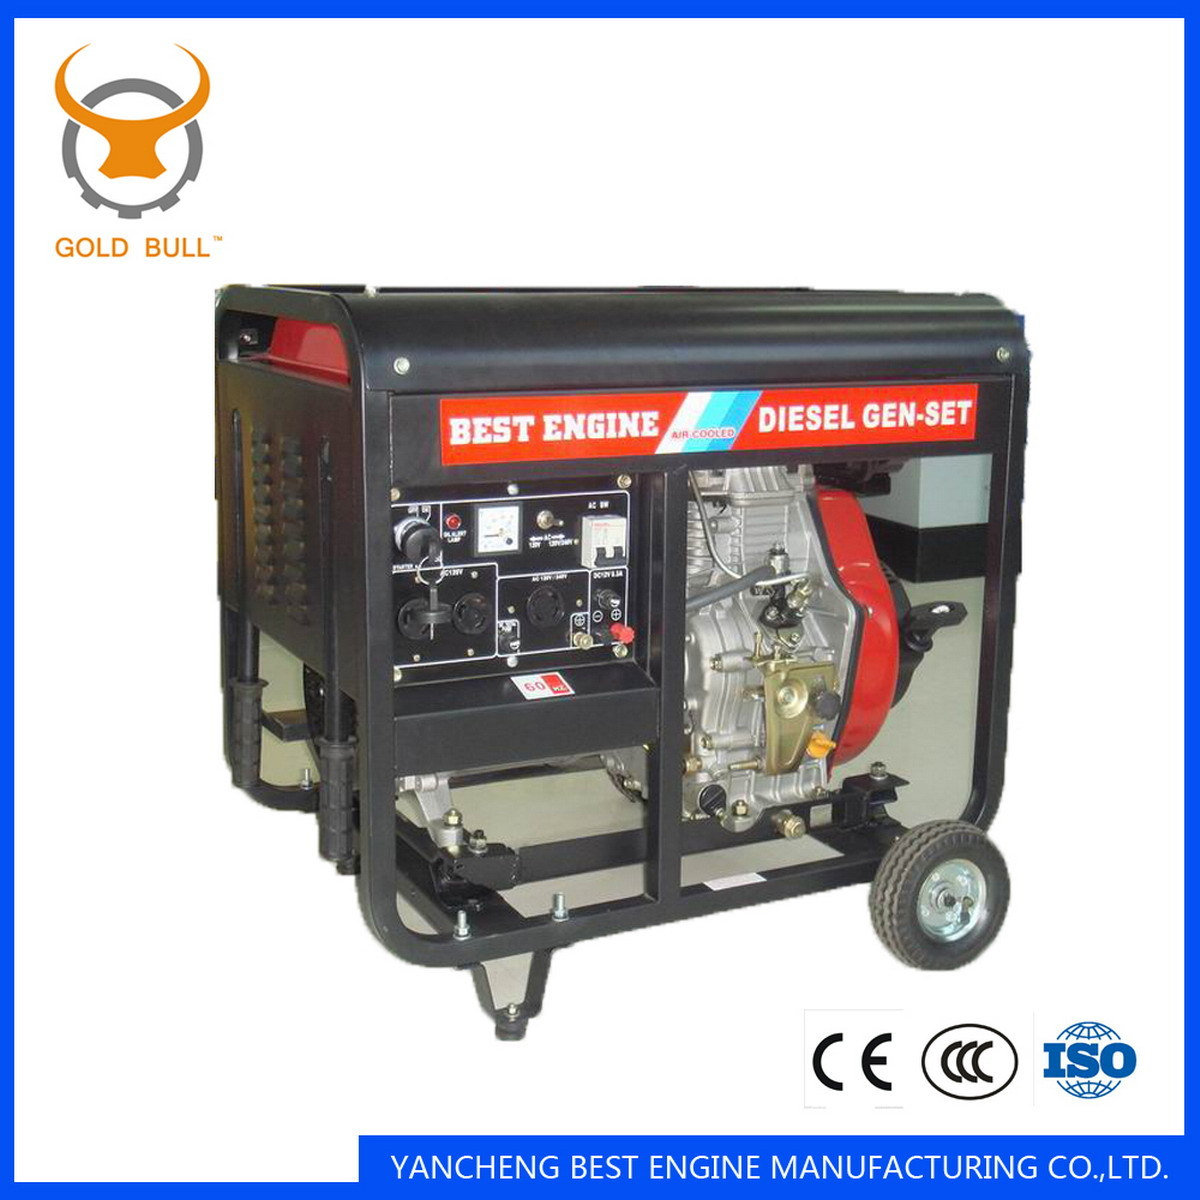 GB2500dg Air-Cooled Power Diesel Generator for Industrial or Home Use